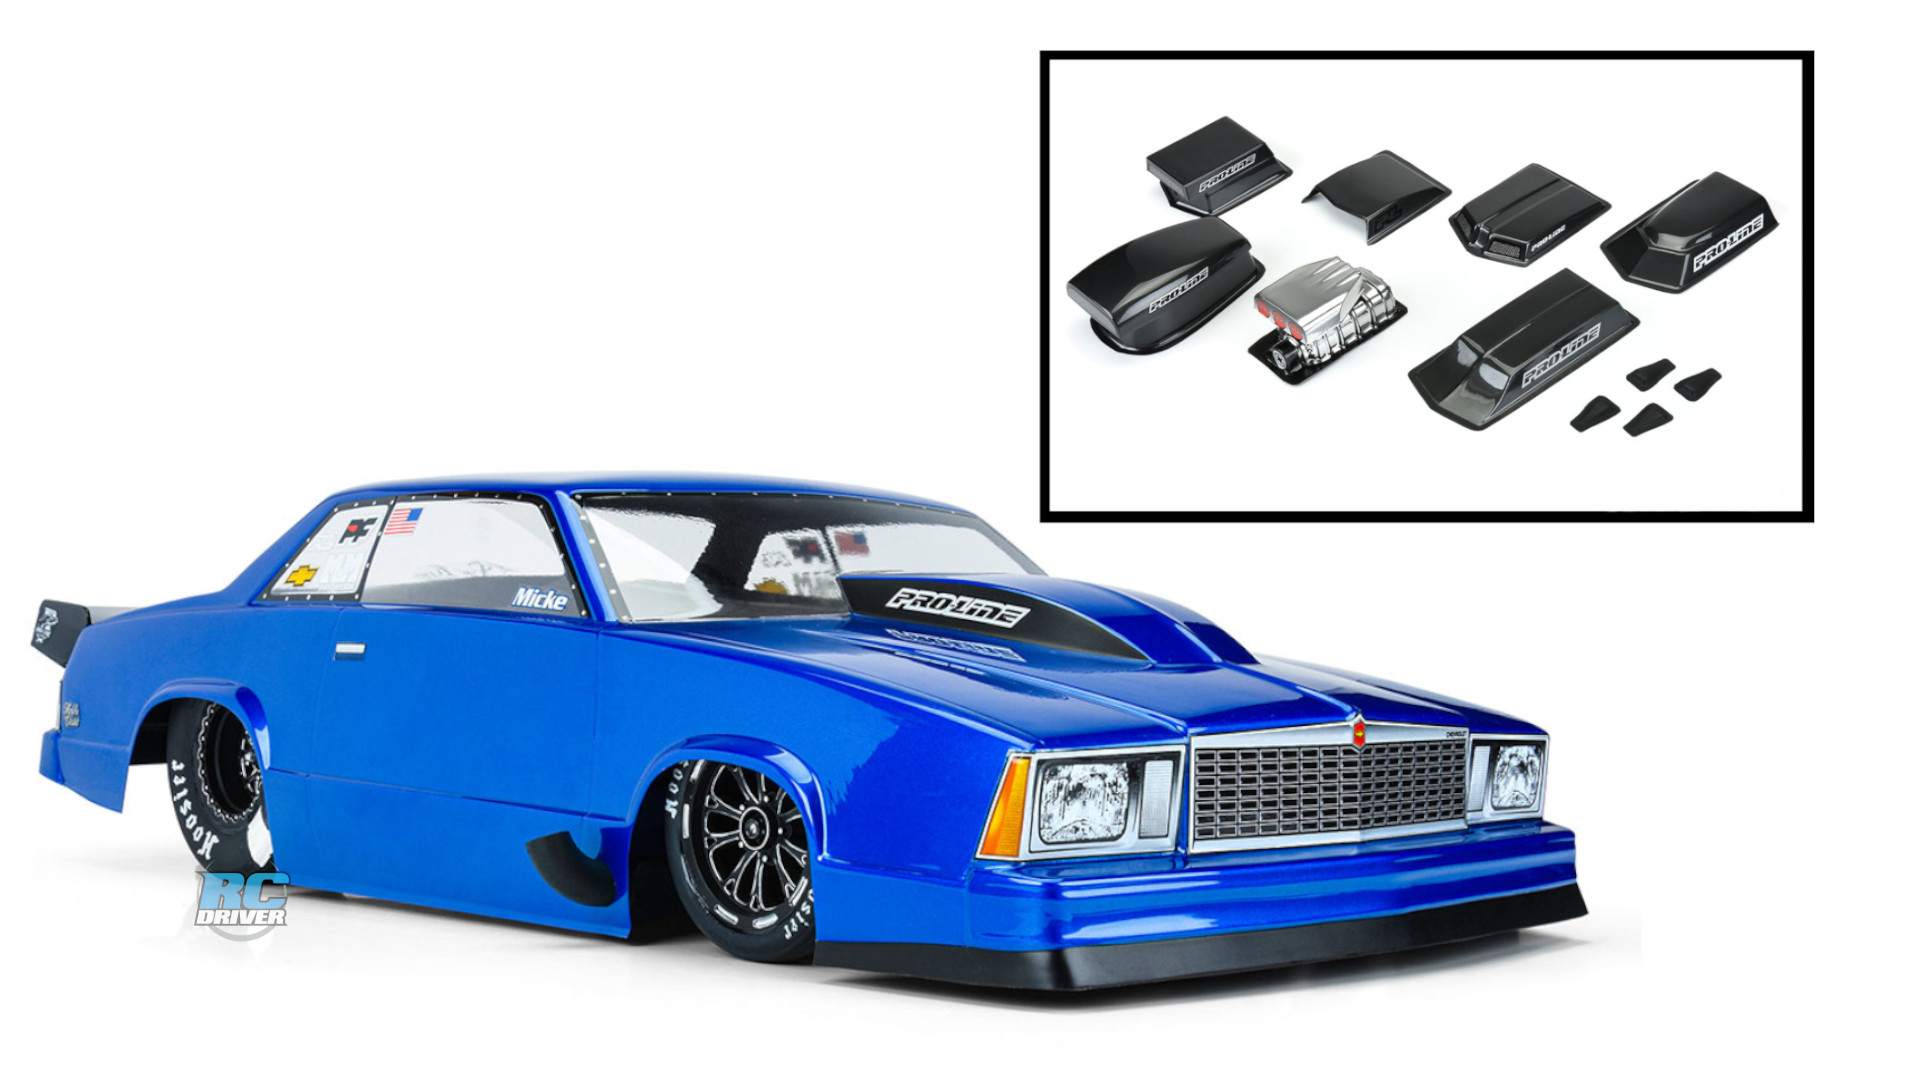 Pro-Line 1978 Chevrolet Malibu drag body & optional hood scoops/blowers